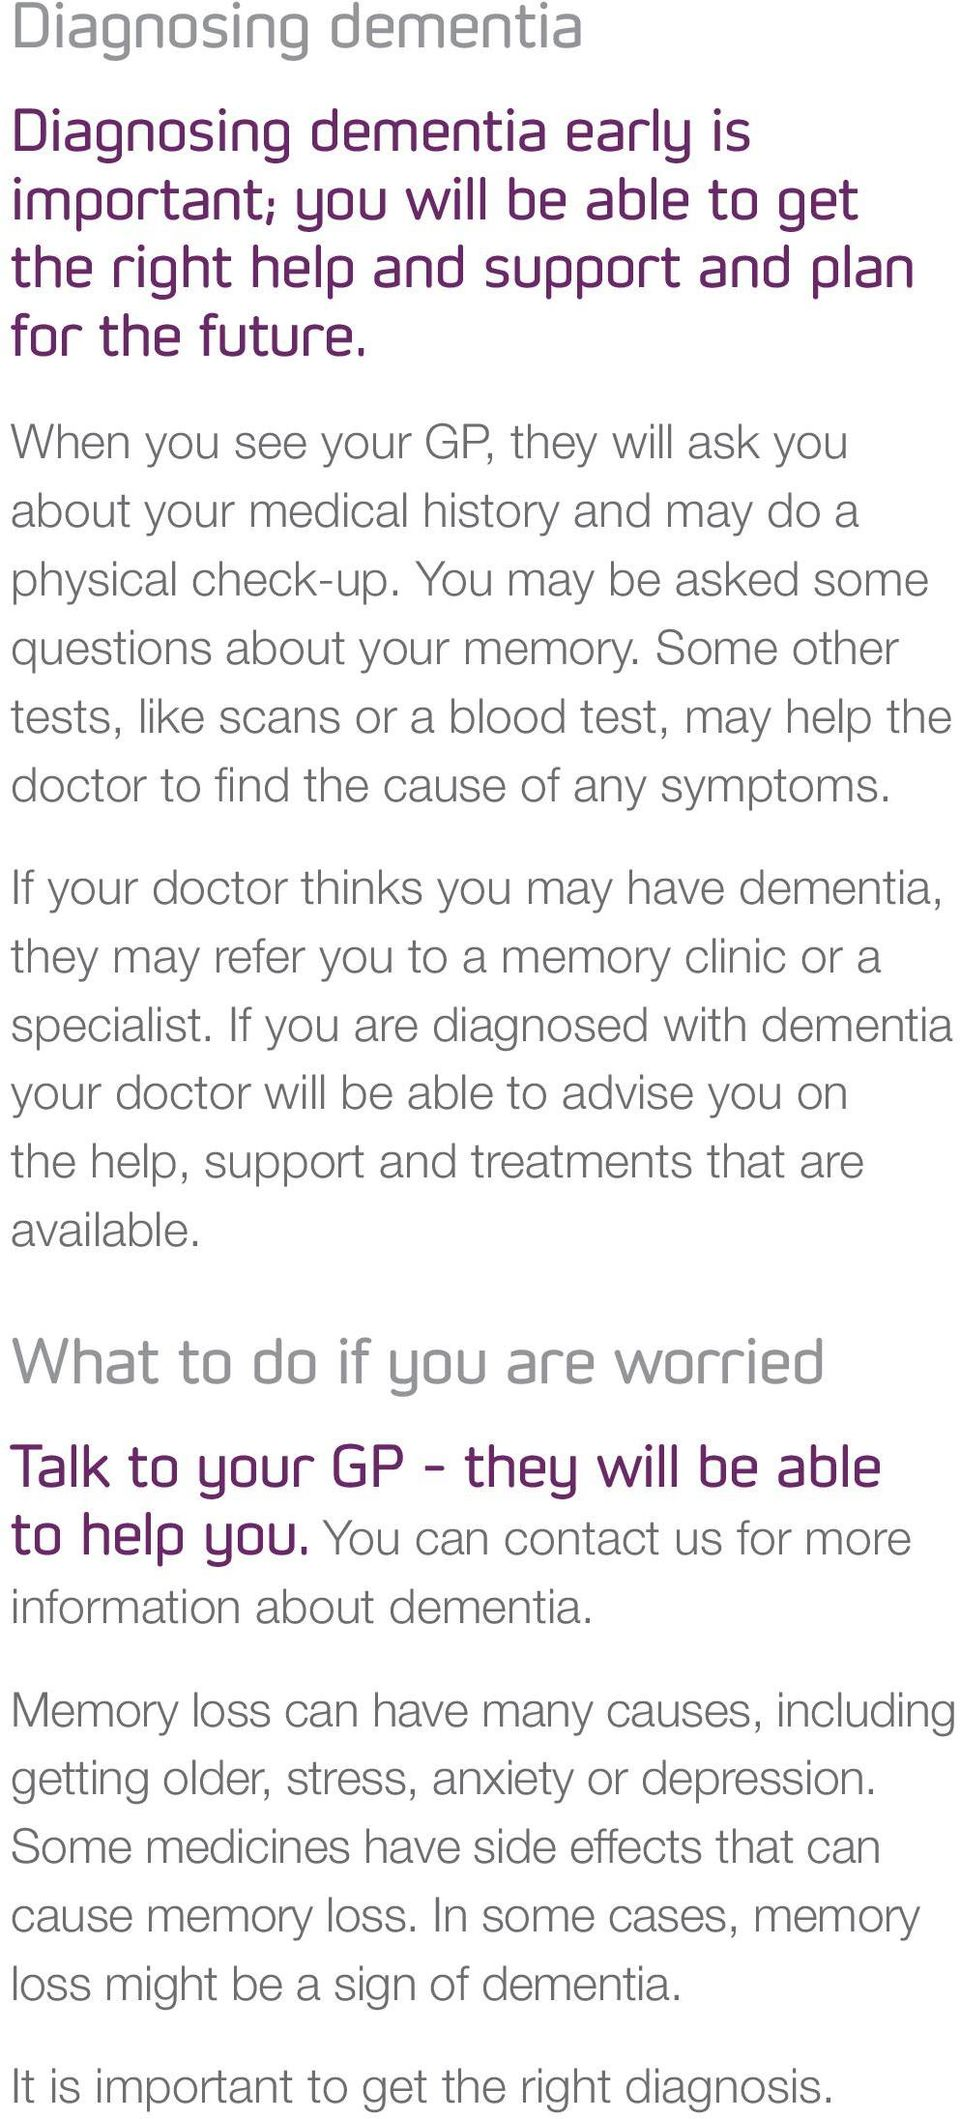 Some other tests, like scans or a blood test, may help the doctor to find the cause of any symptoms. If your doctor thinks you may have dementia, they may refer you to a memory clinic or a specialist.